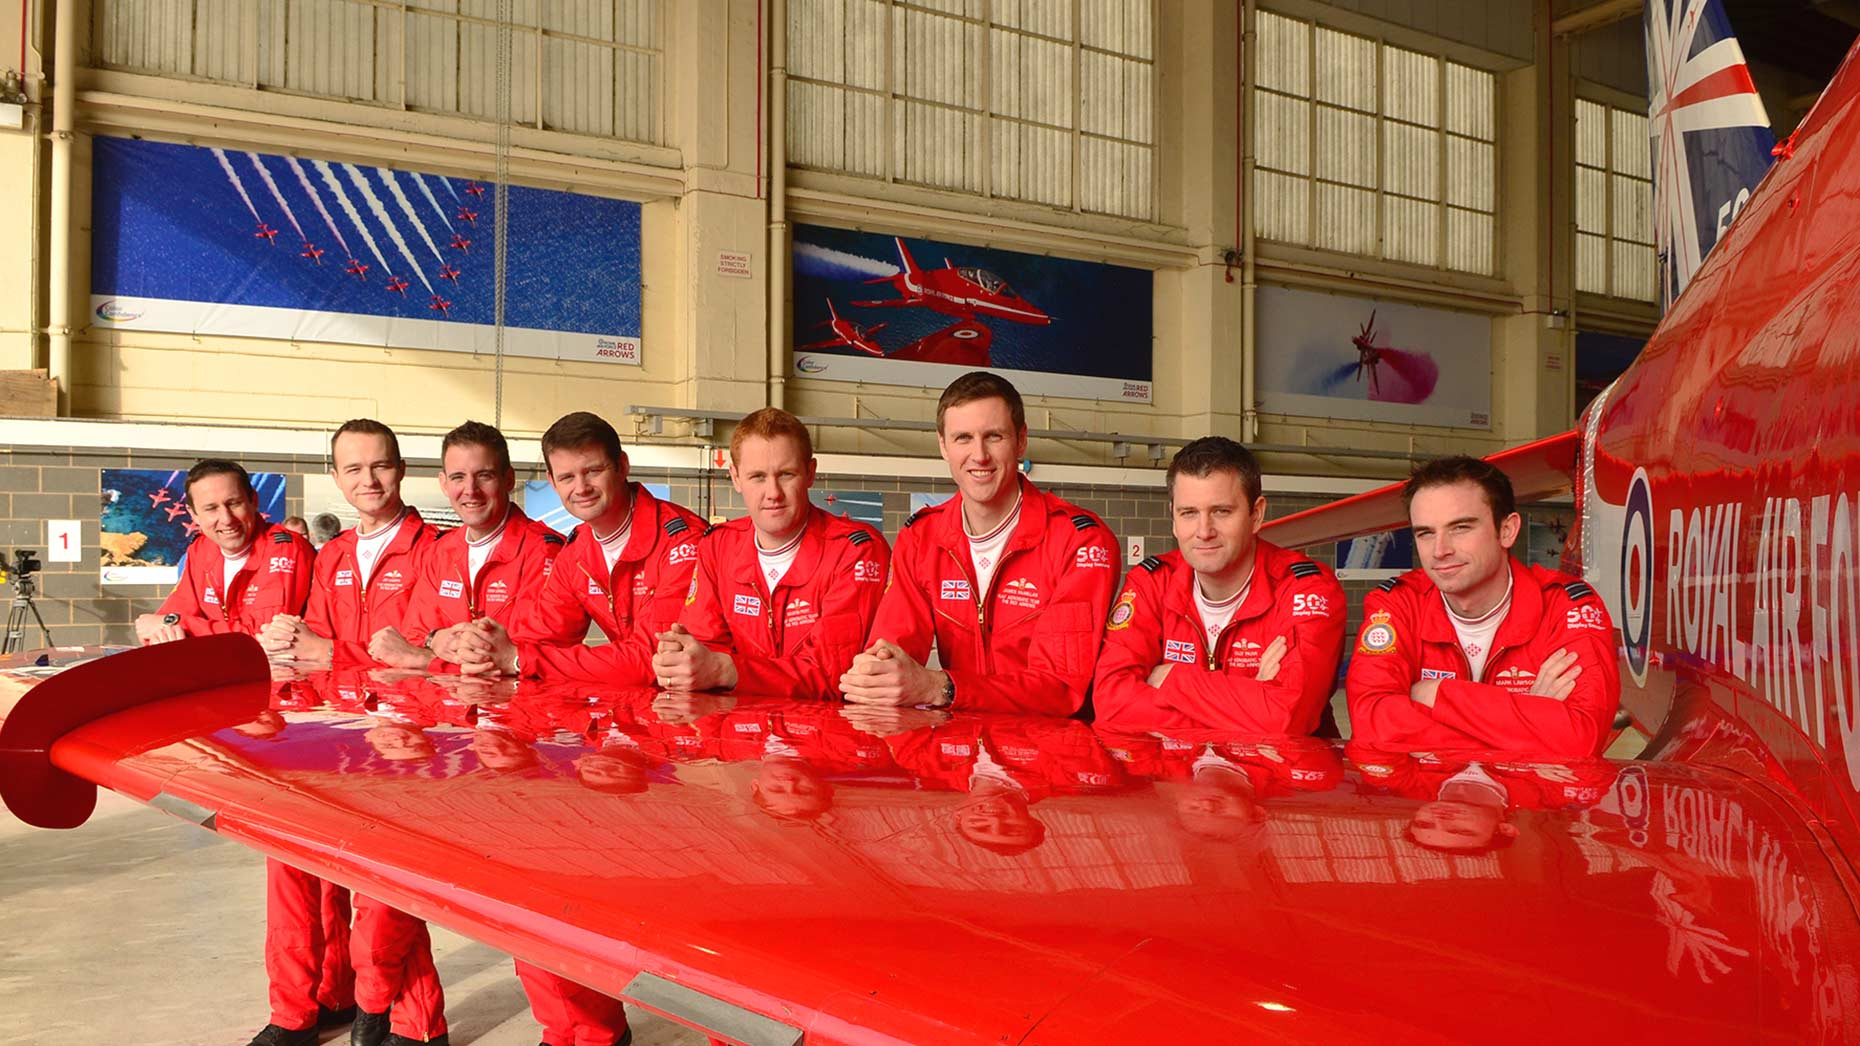 The RAF Reda Arrows team celebrating their 50th season in 2014. Photo: Steve Smailes for The Lincolnite